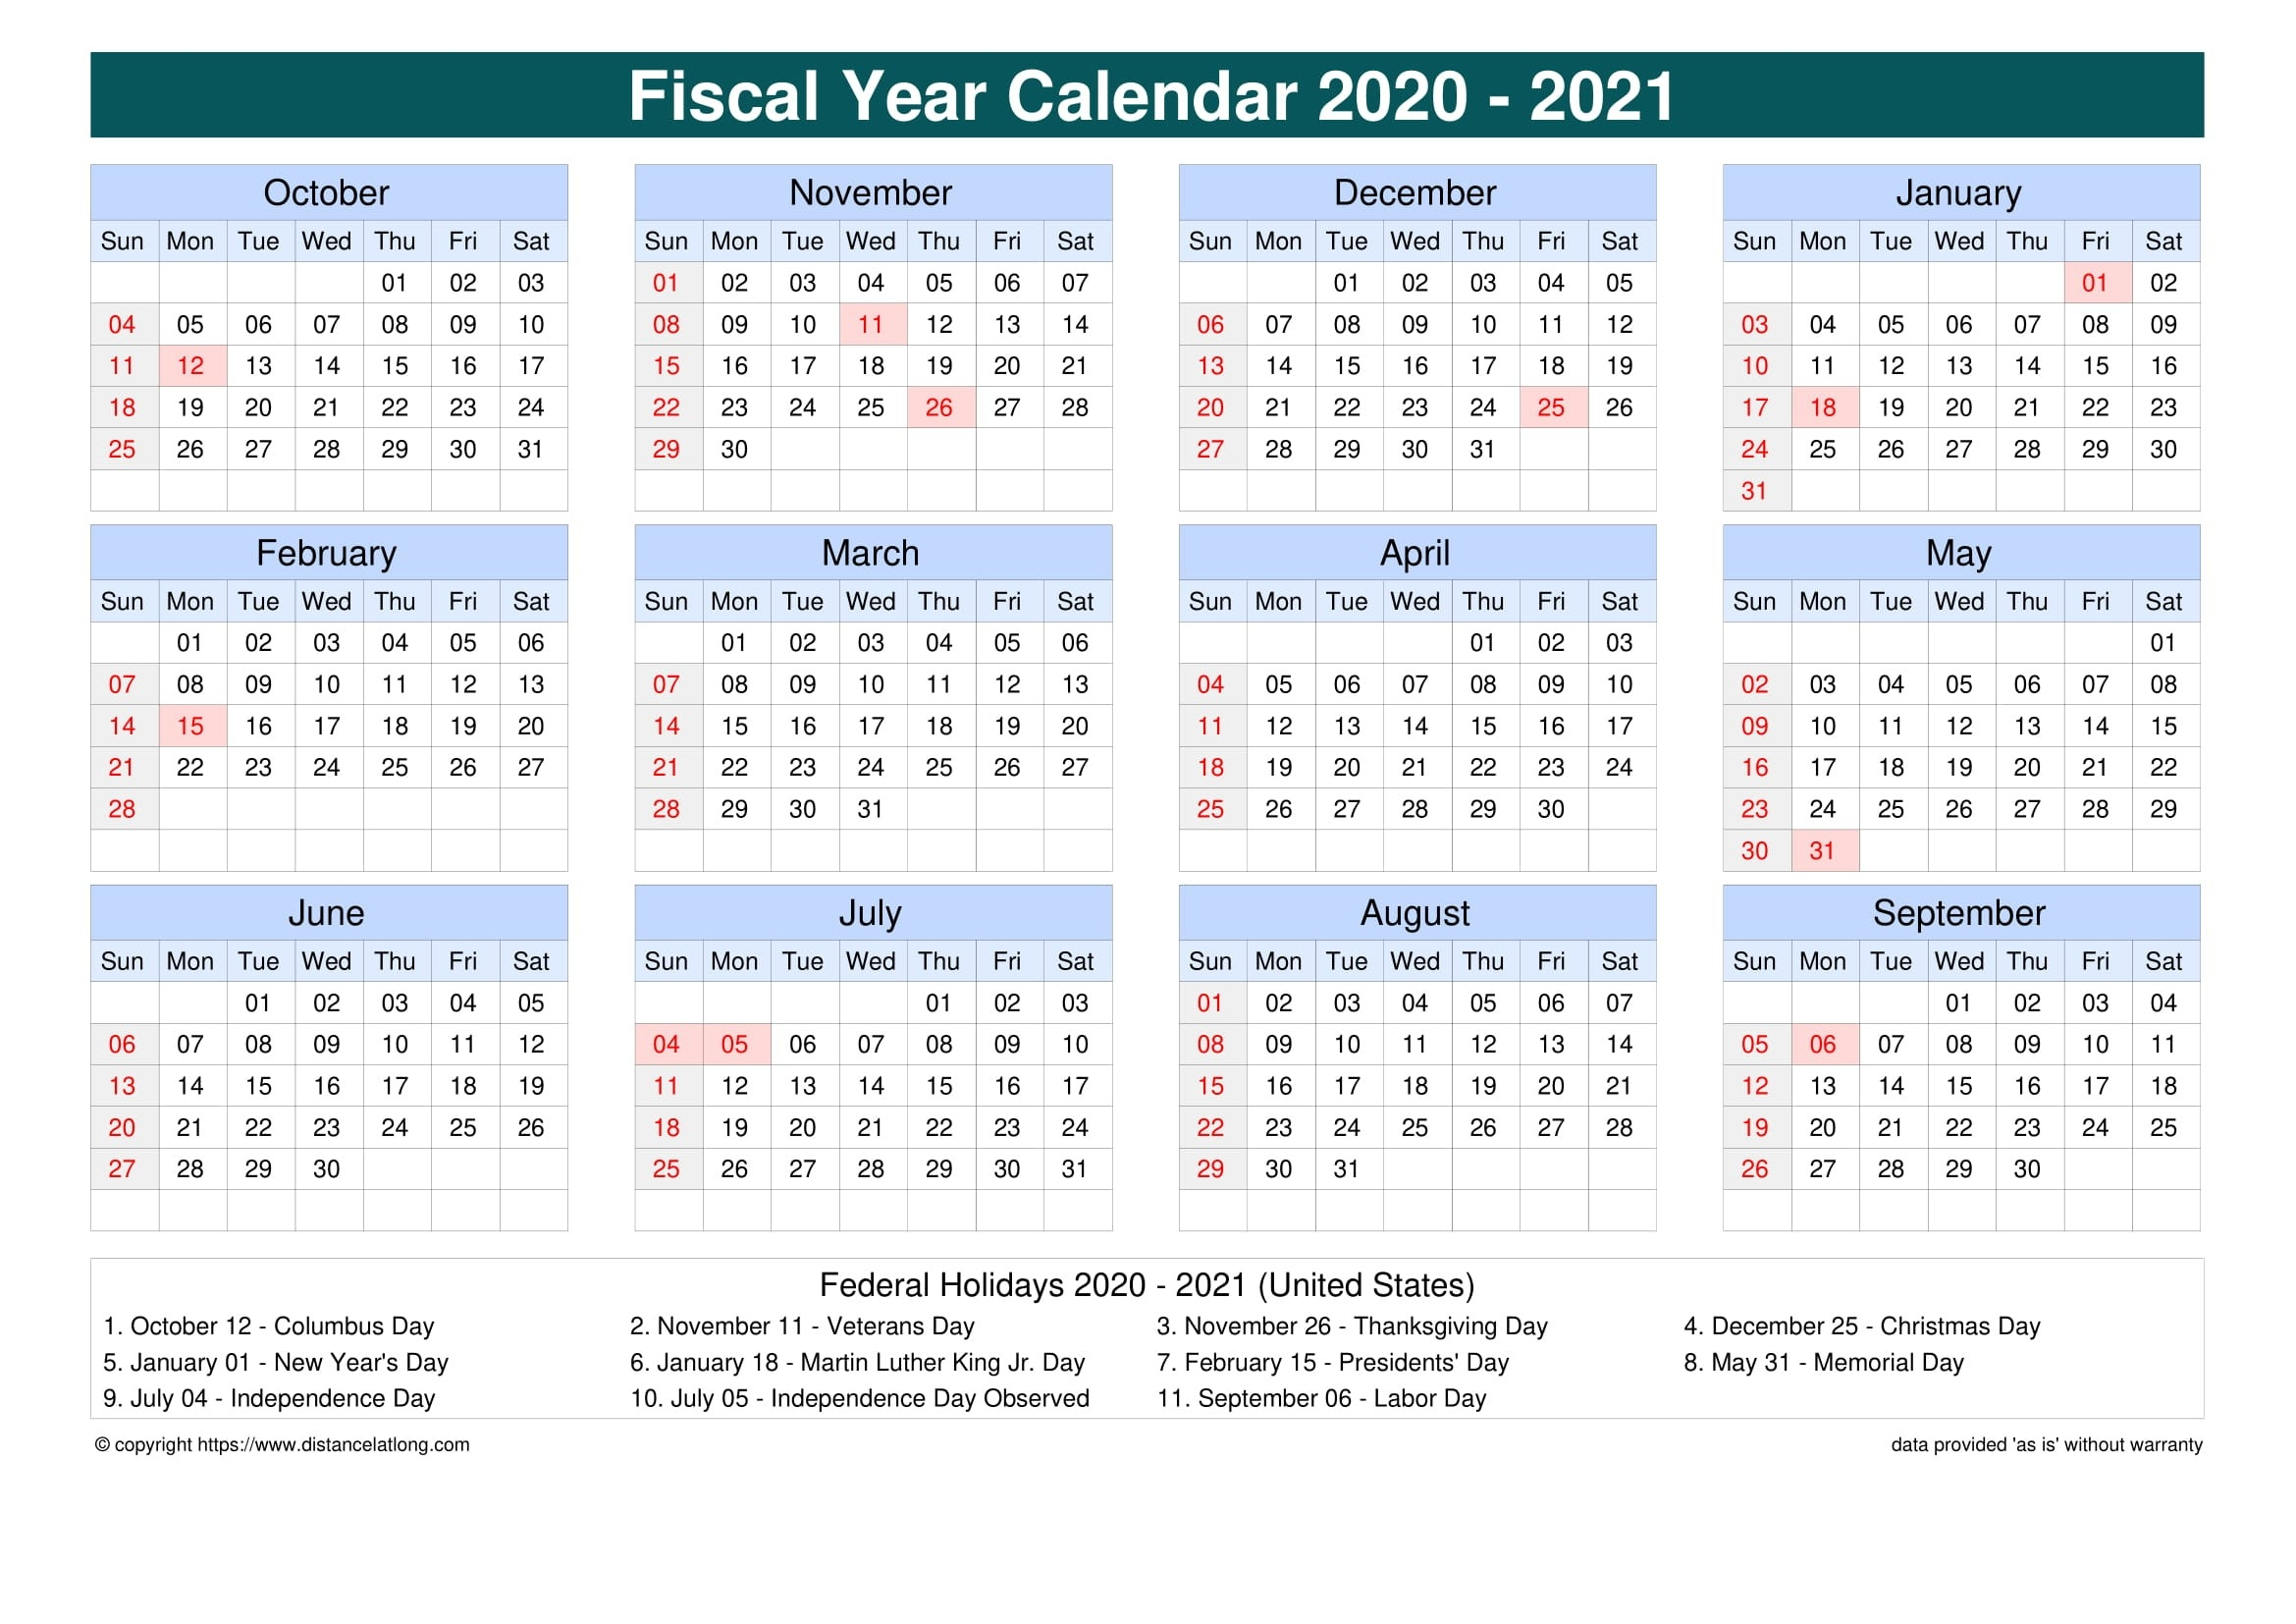 2020 Australia Holiday Calendar Australia Portrait  Australia What Are The Dates For The 18/19 Financial Year